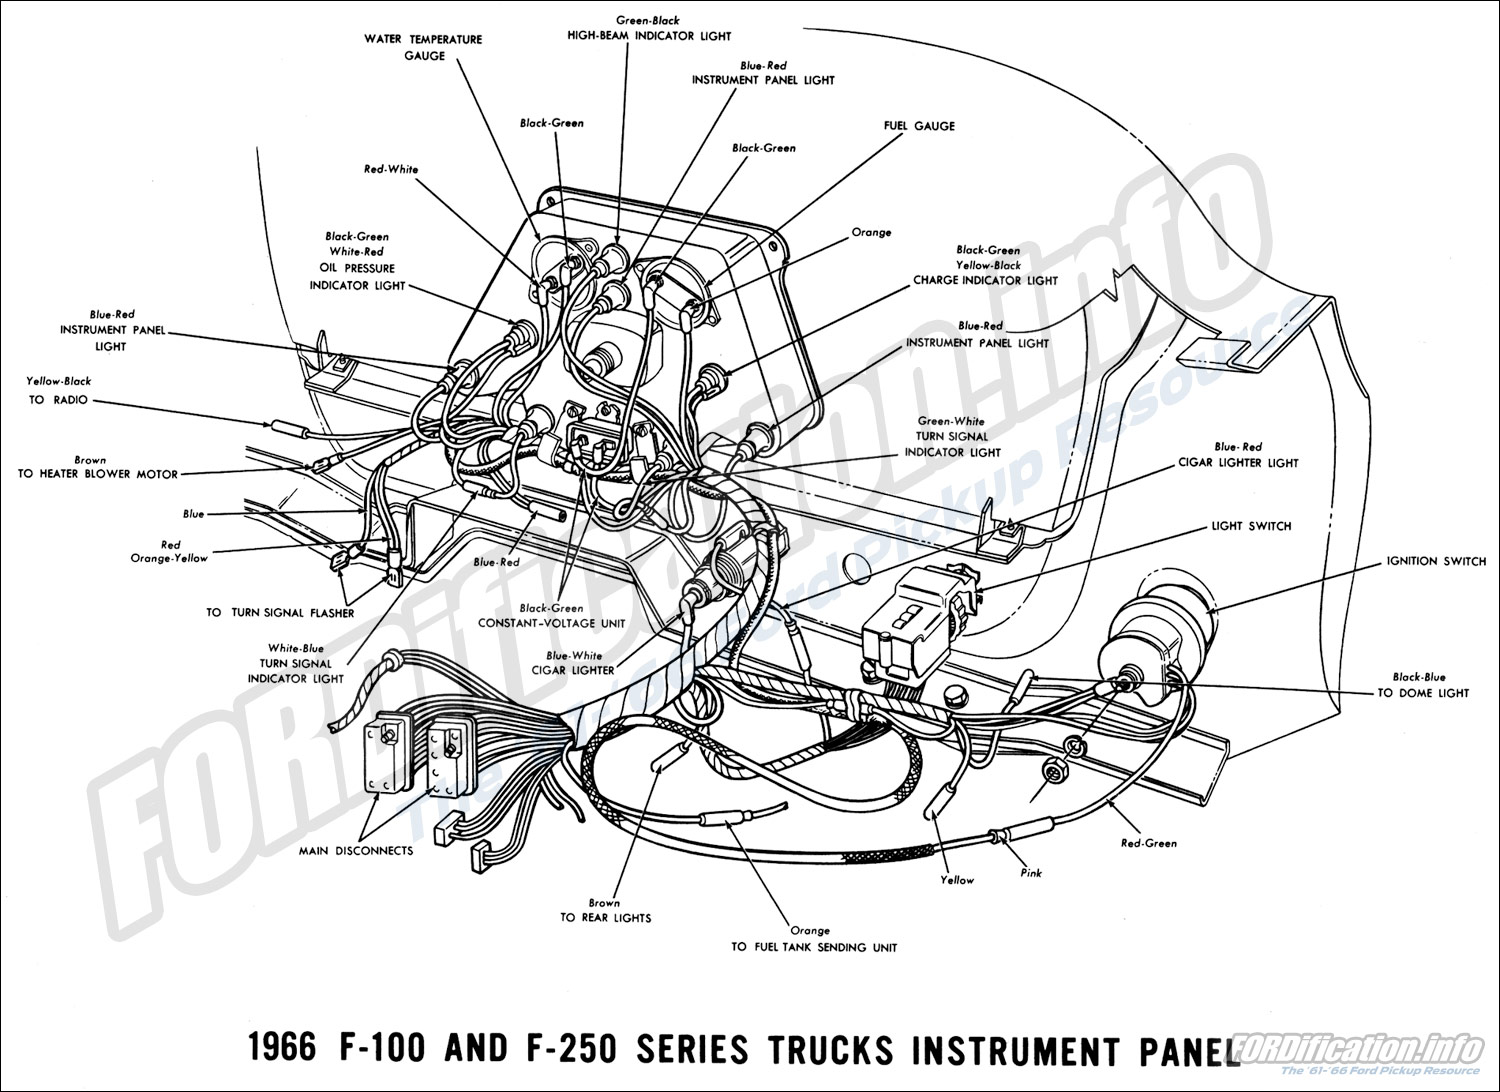 66instrumentpanel 1966 ford truck wiring diagrams fordification info the '61 '66 1966 ford truck wiring diagram at nearapp.co